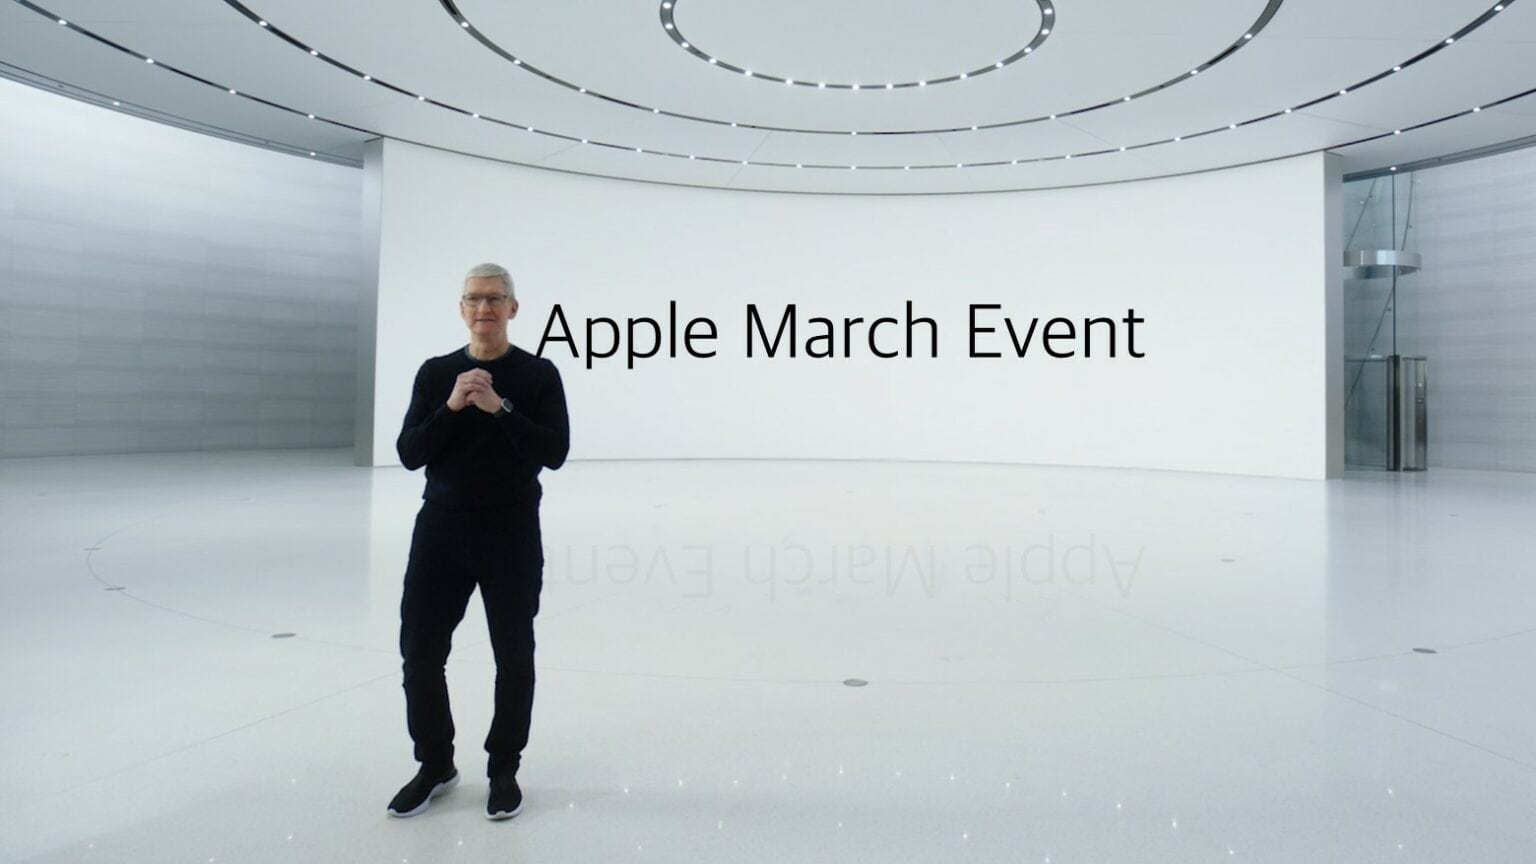 The Apple March event is almost here.